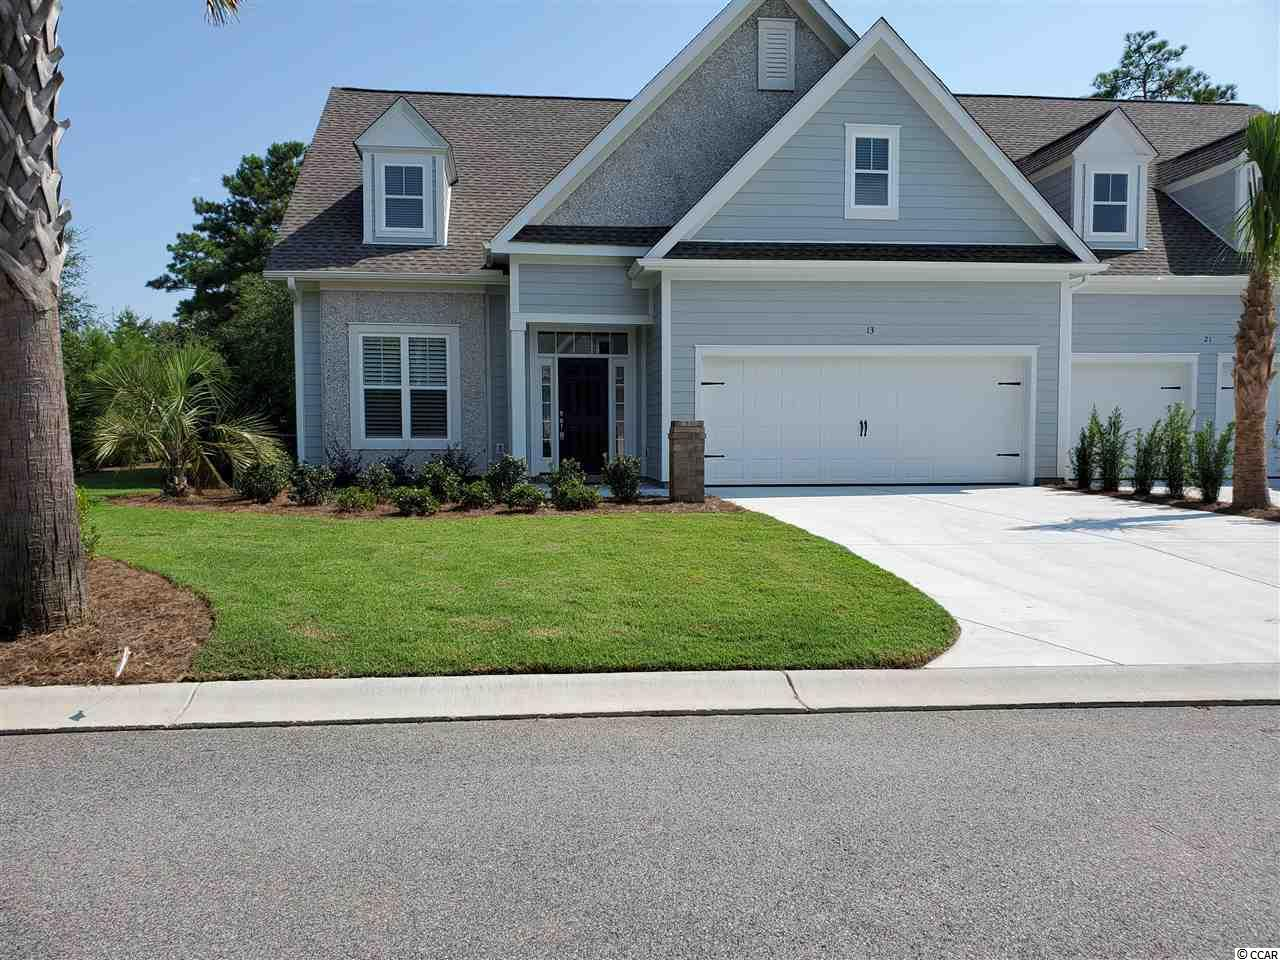 Lot 14 Golf Club Court 14, Pawleys Island, SC 29585